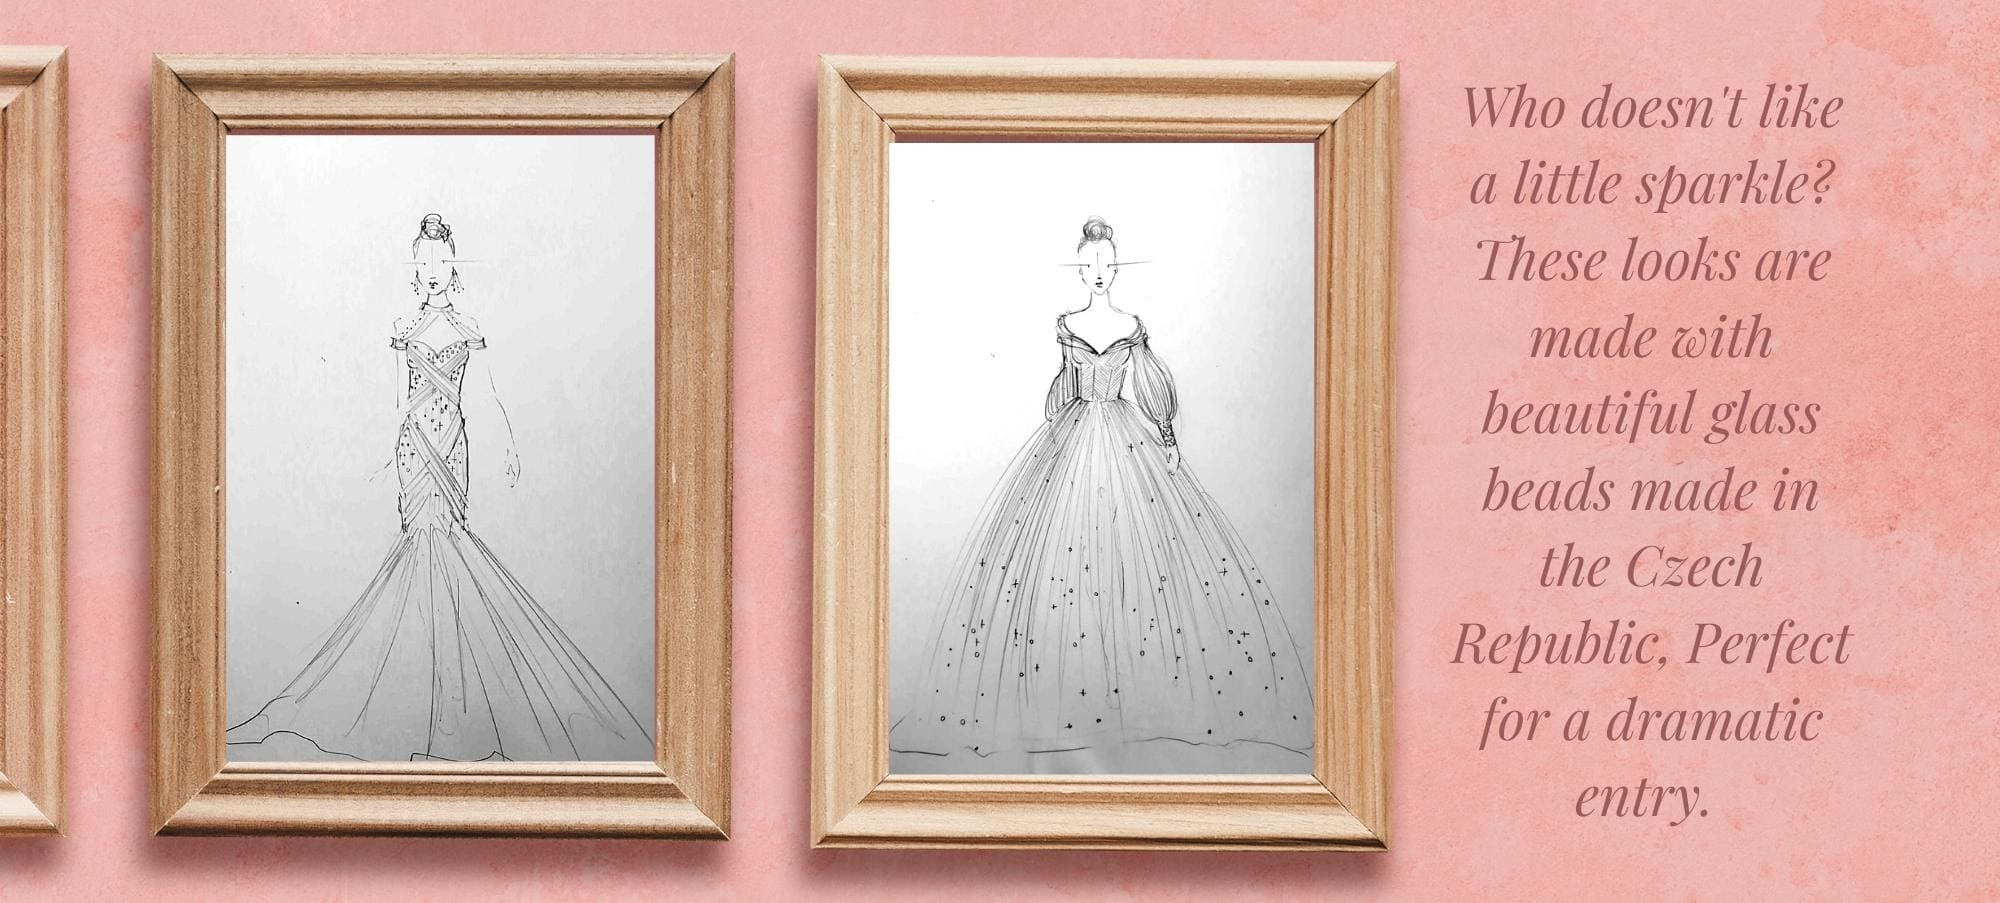 Drawings of two dresses with glass beads from the Czech Republic.